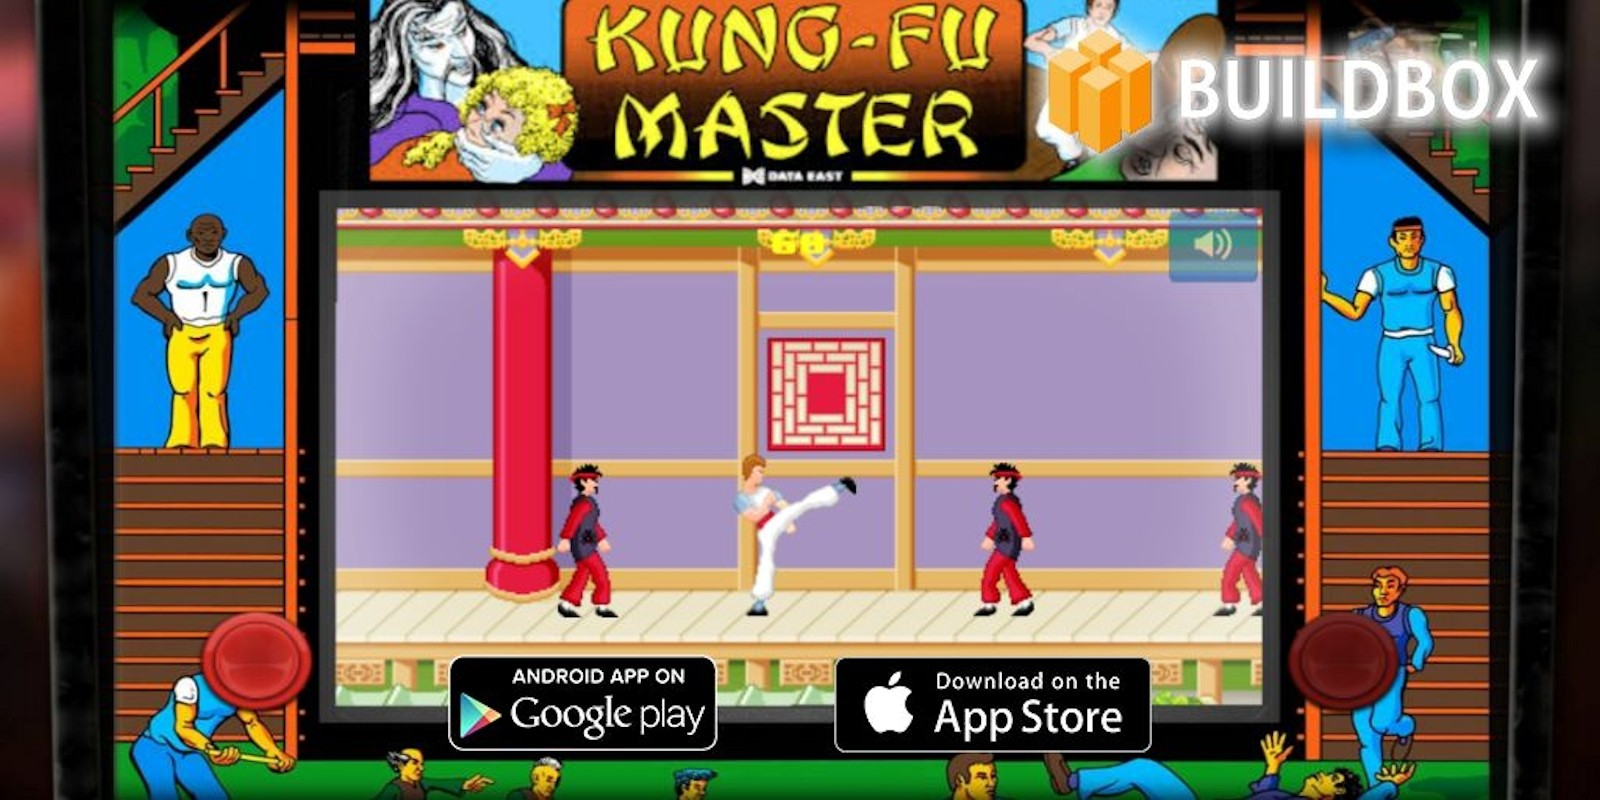 Kung-Fu Master Tribute - Buildbox Game Template